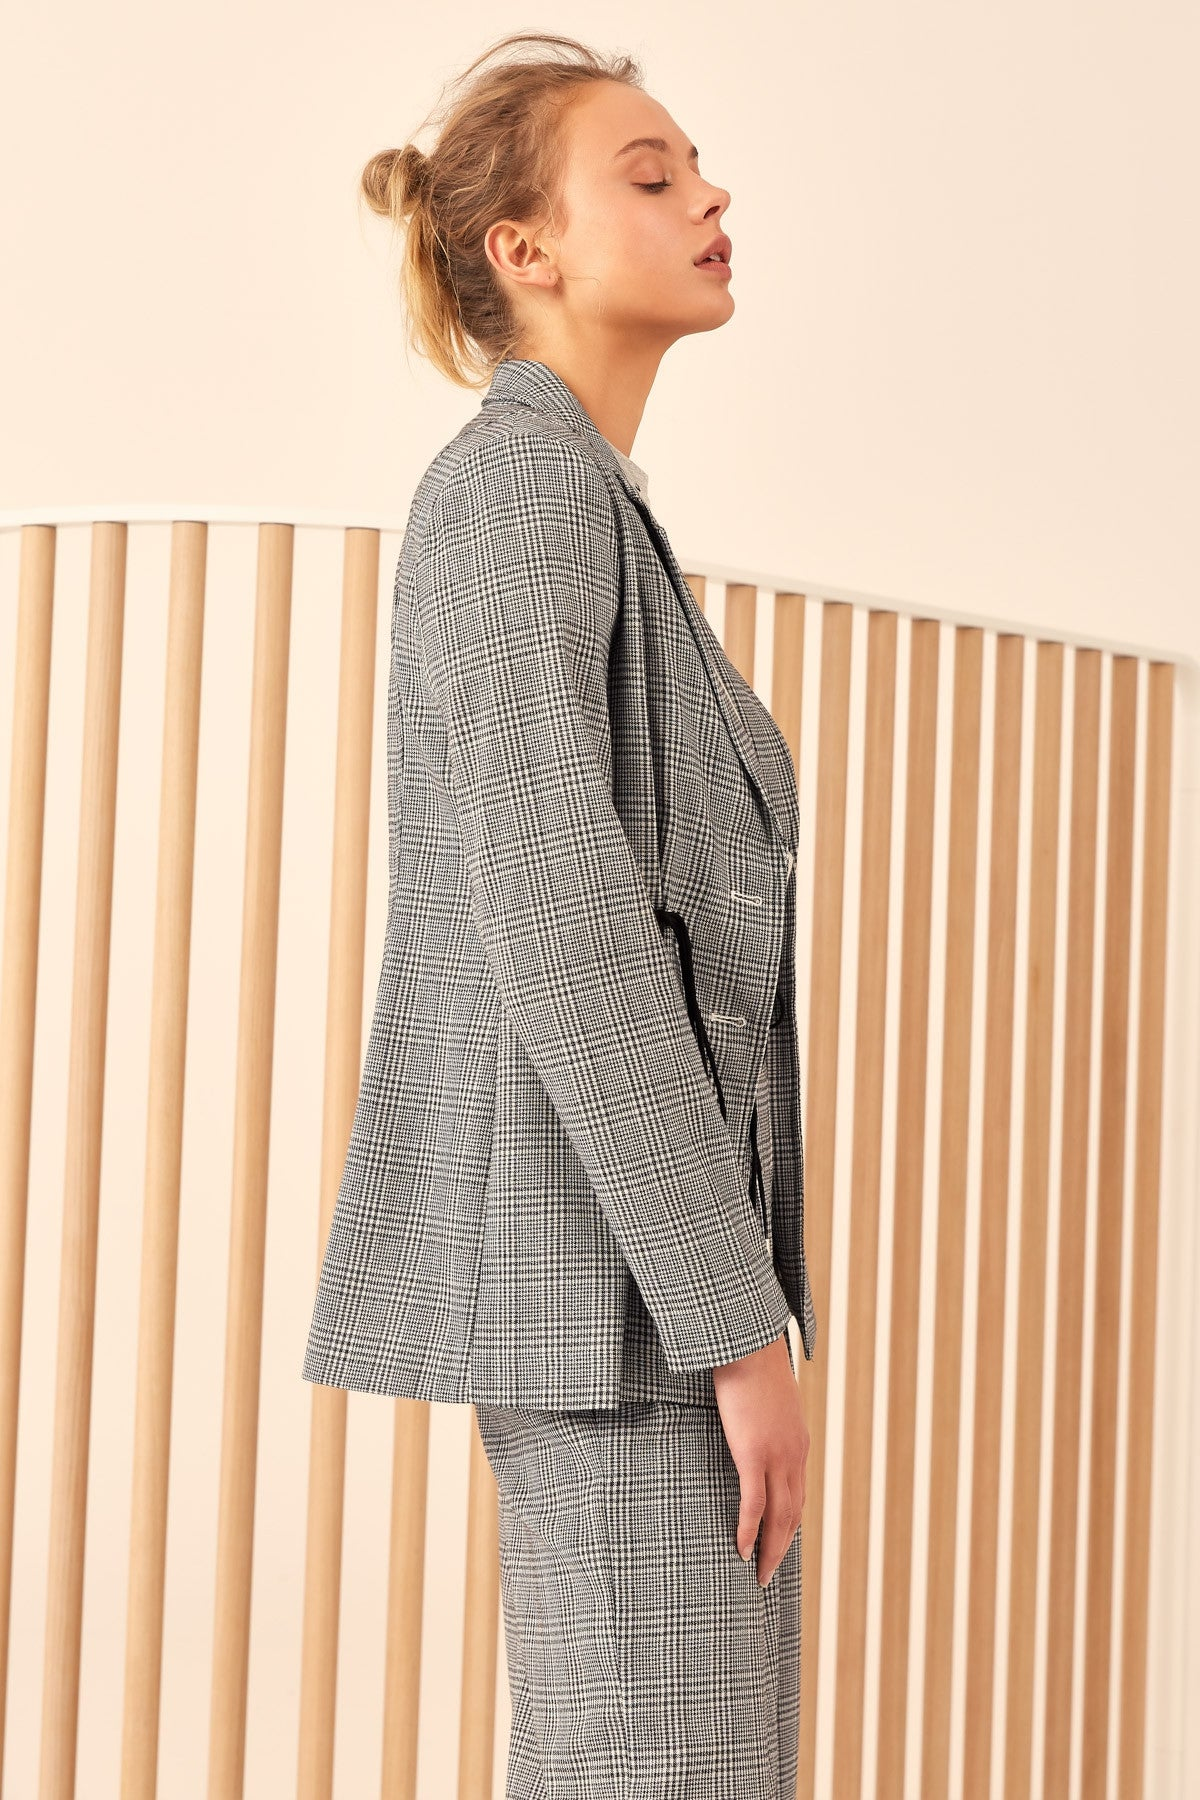 HOPES UP BLAZER black check